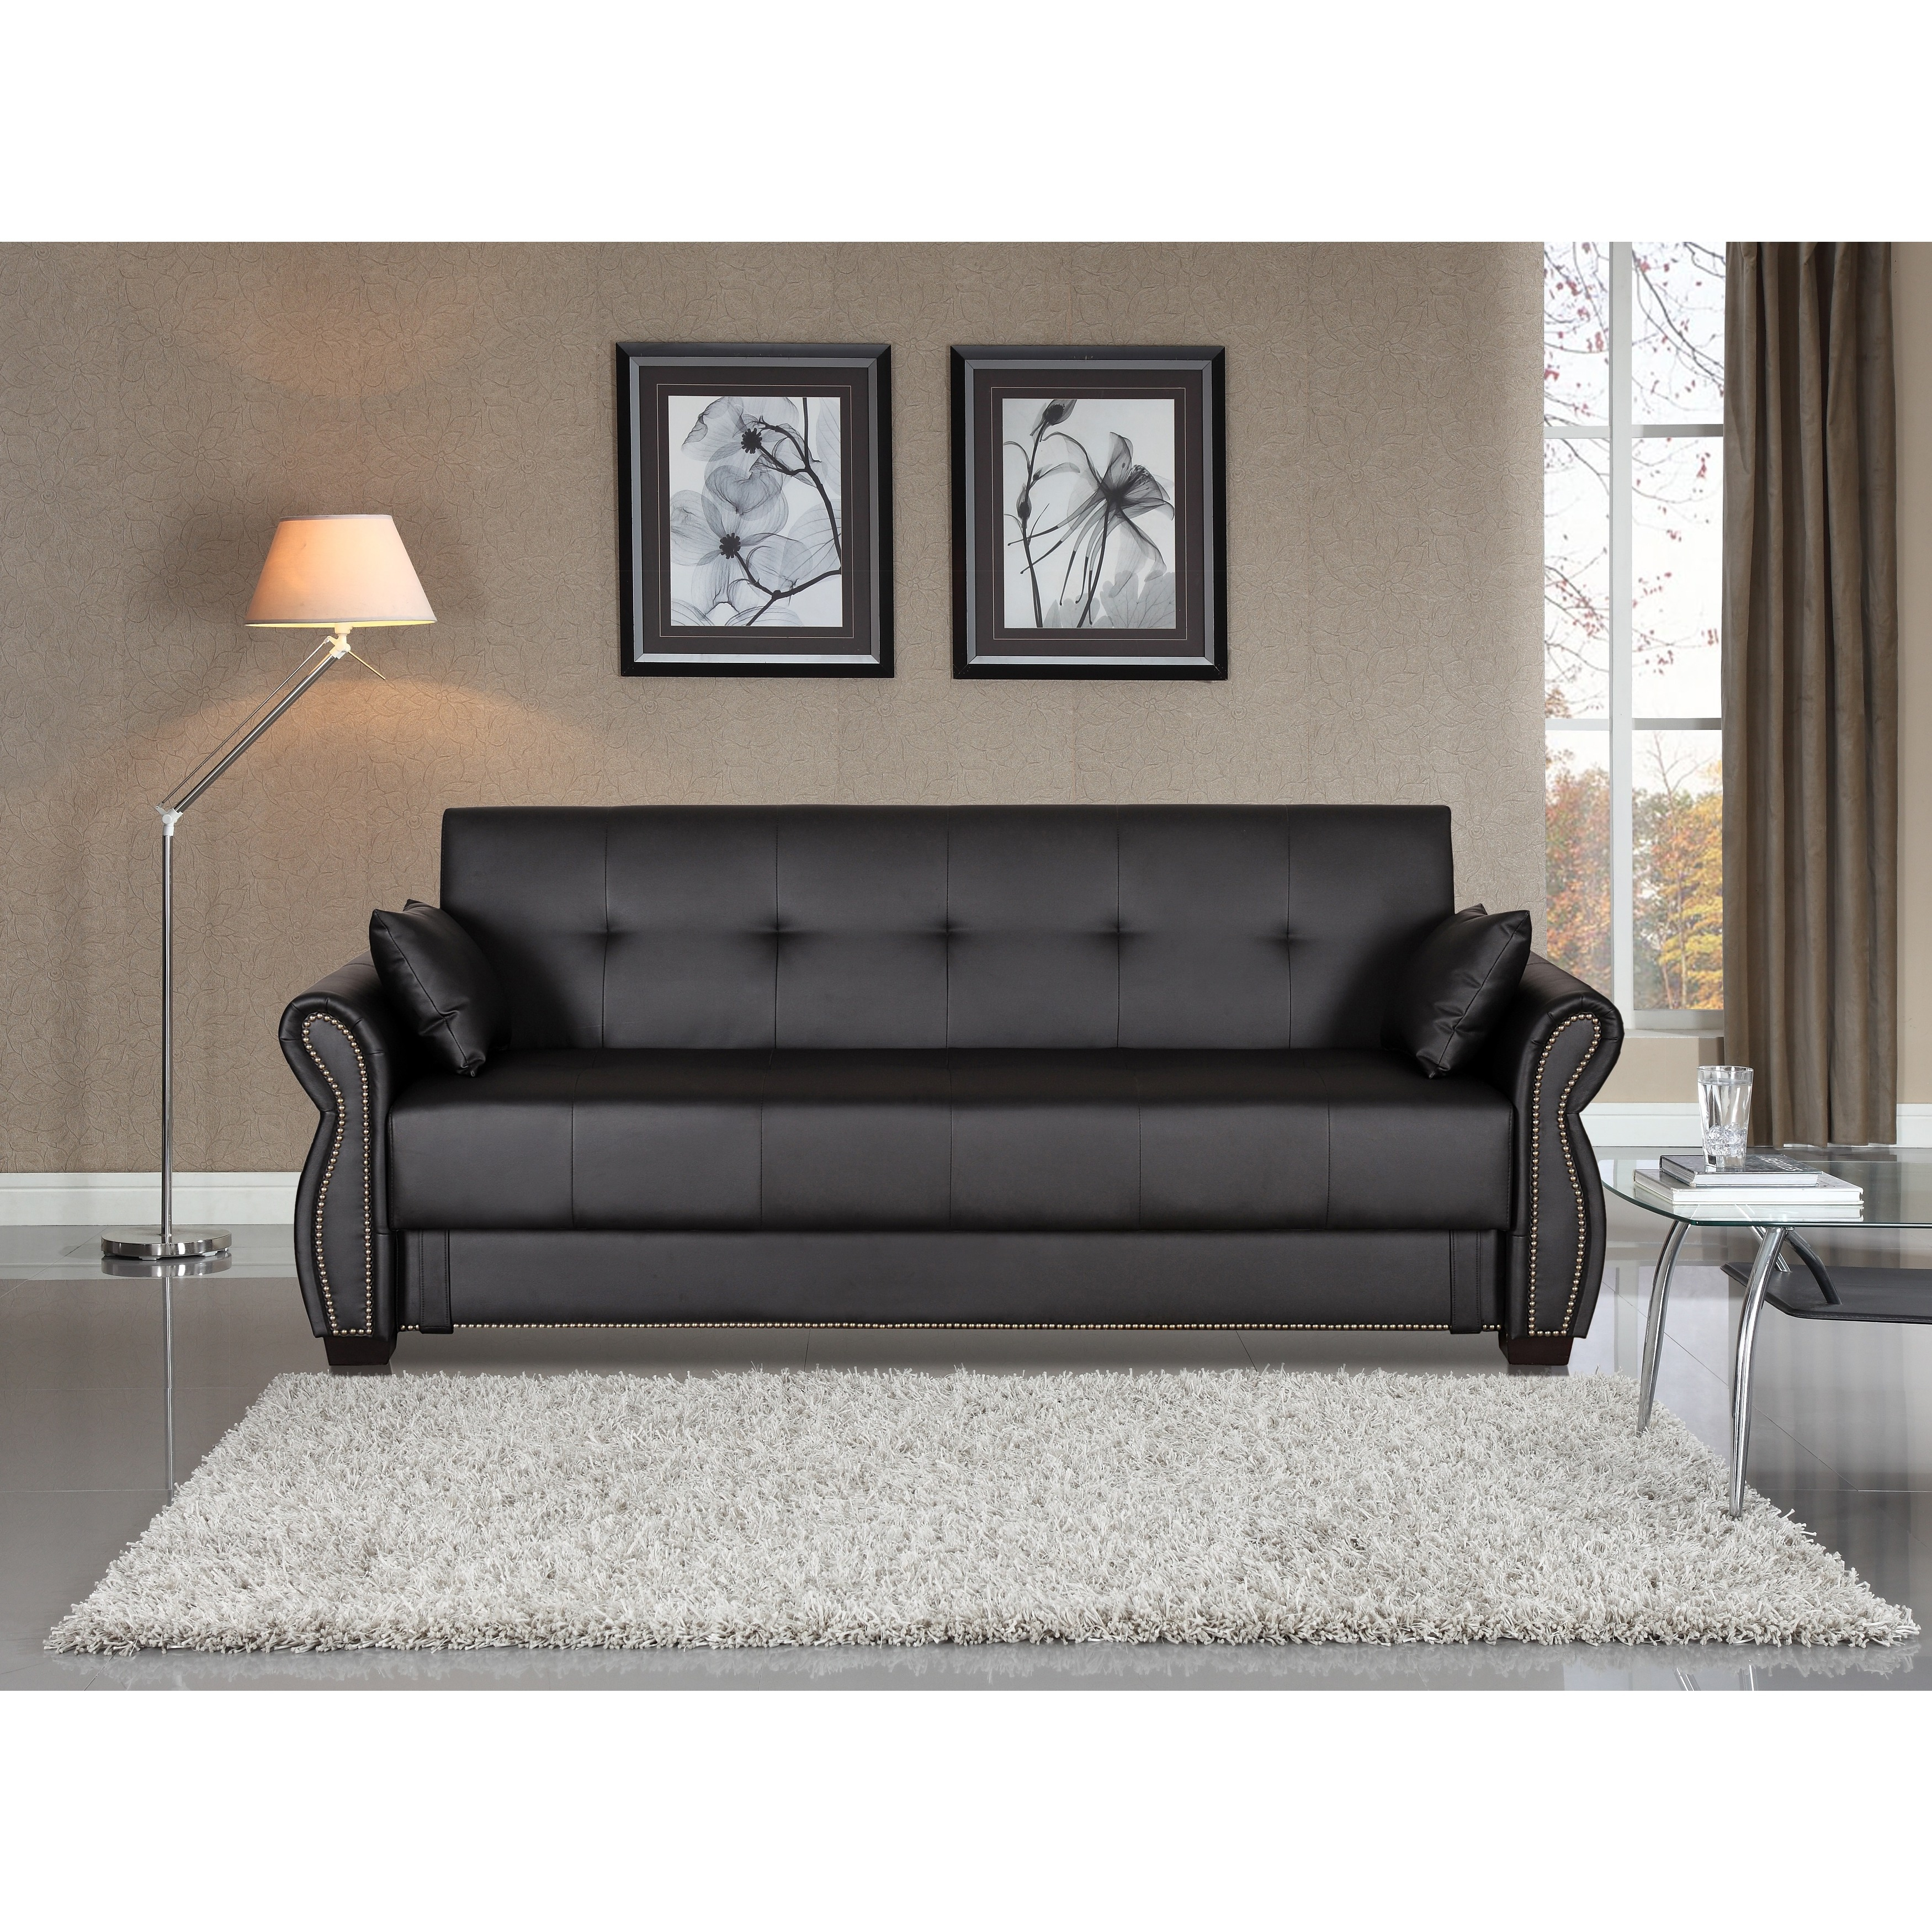 set loveseat mercury minimalist off of sofa and couch row cypress serta grey attachment upholstery